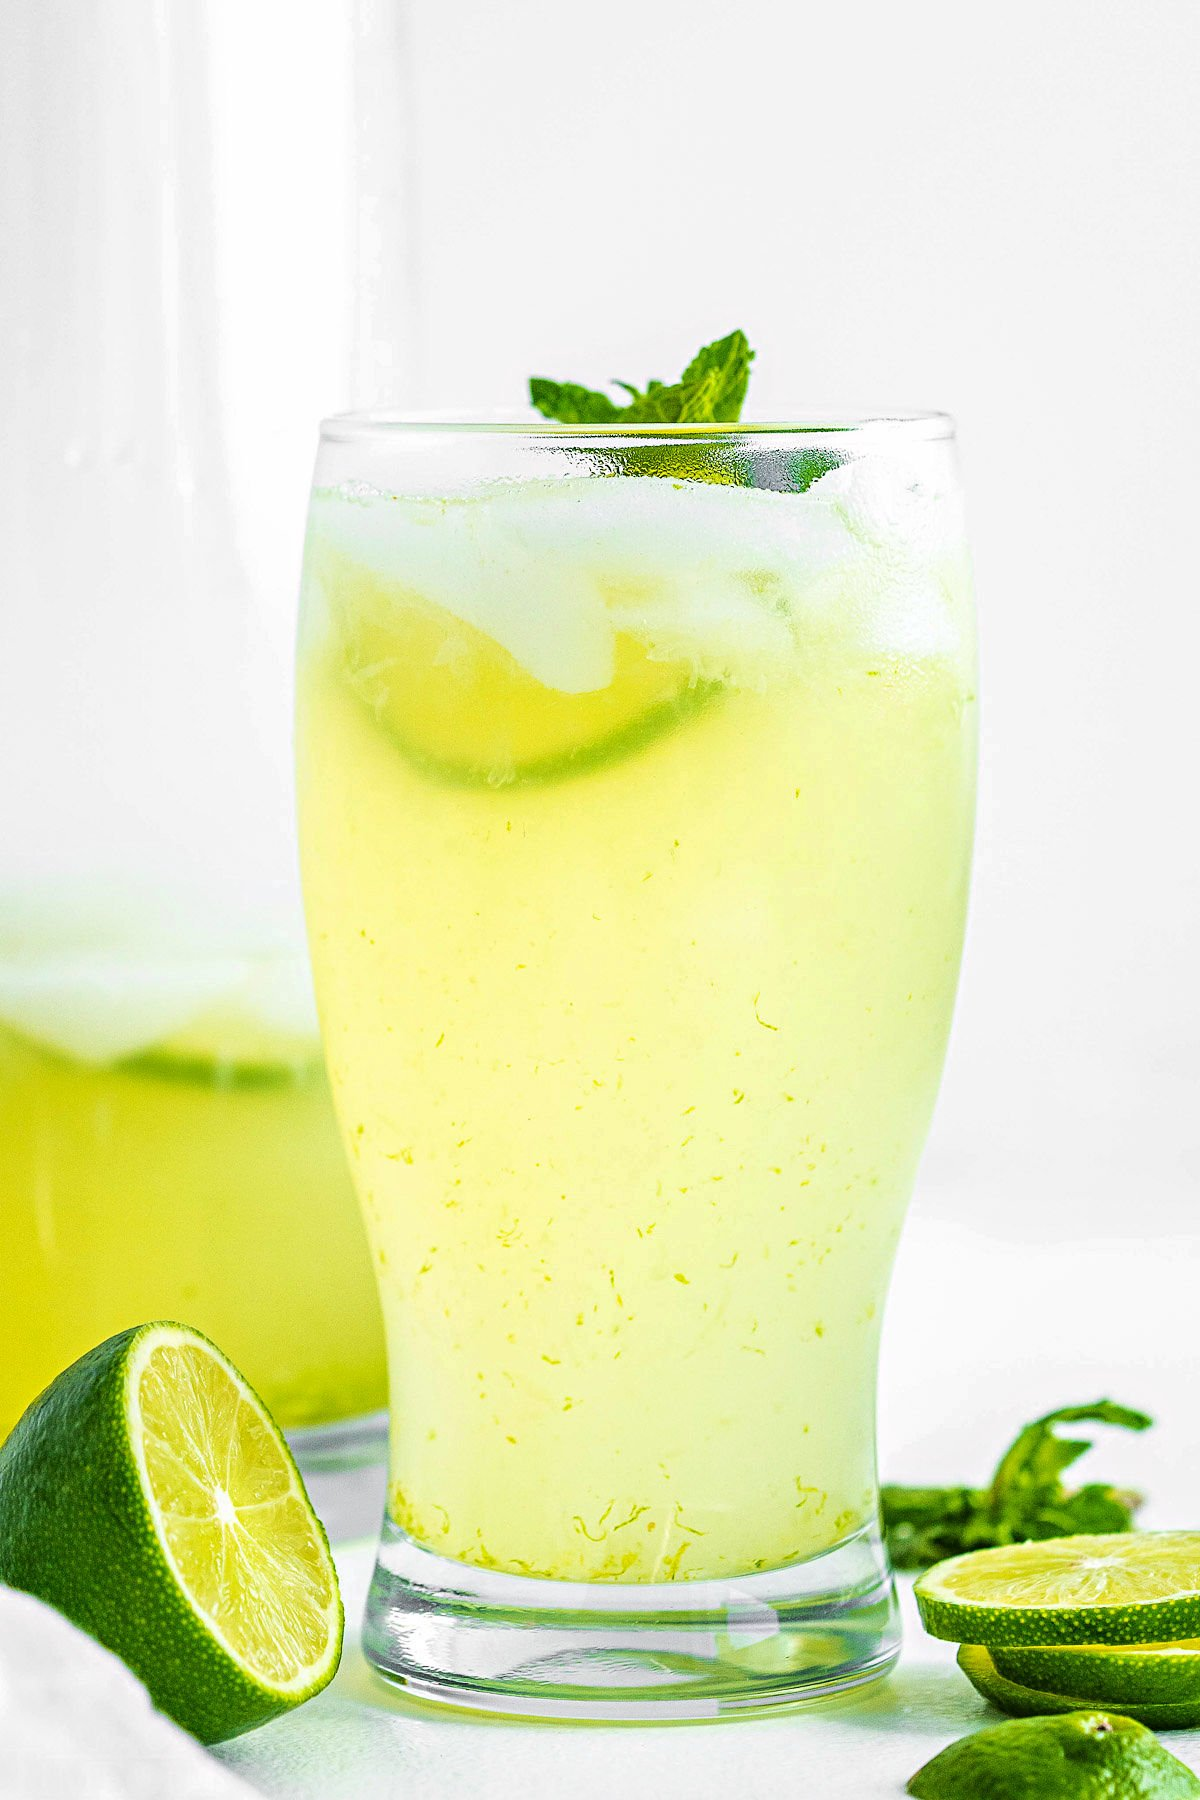 tall glass of freshly made limeade garnished with a sprig of mint and fresh lime slices sitting in front of pitcher of limemade.